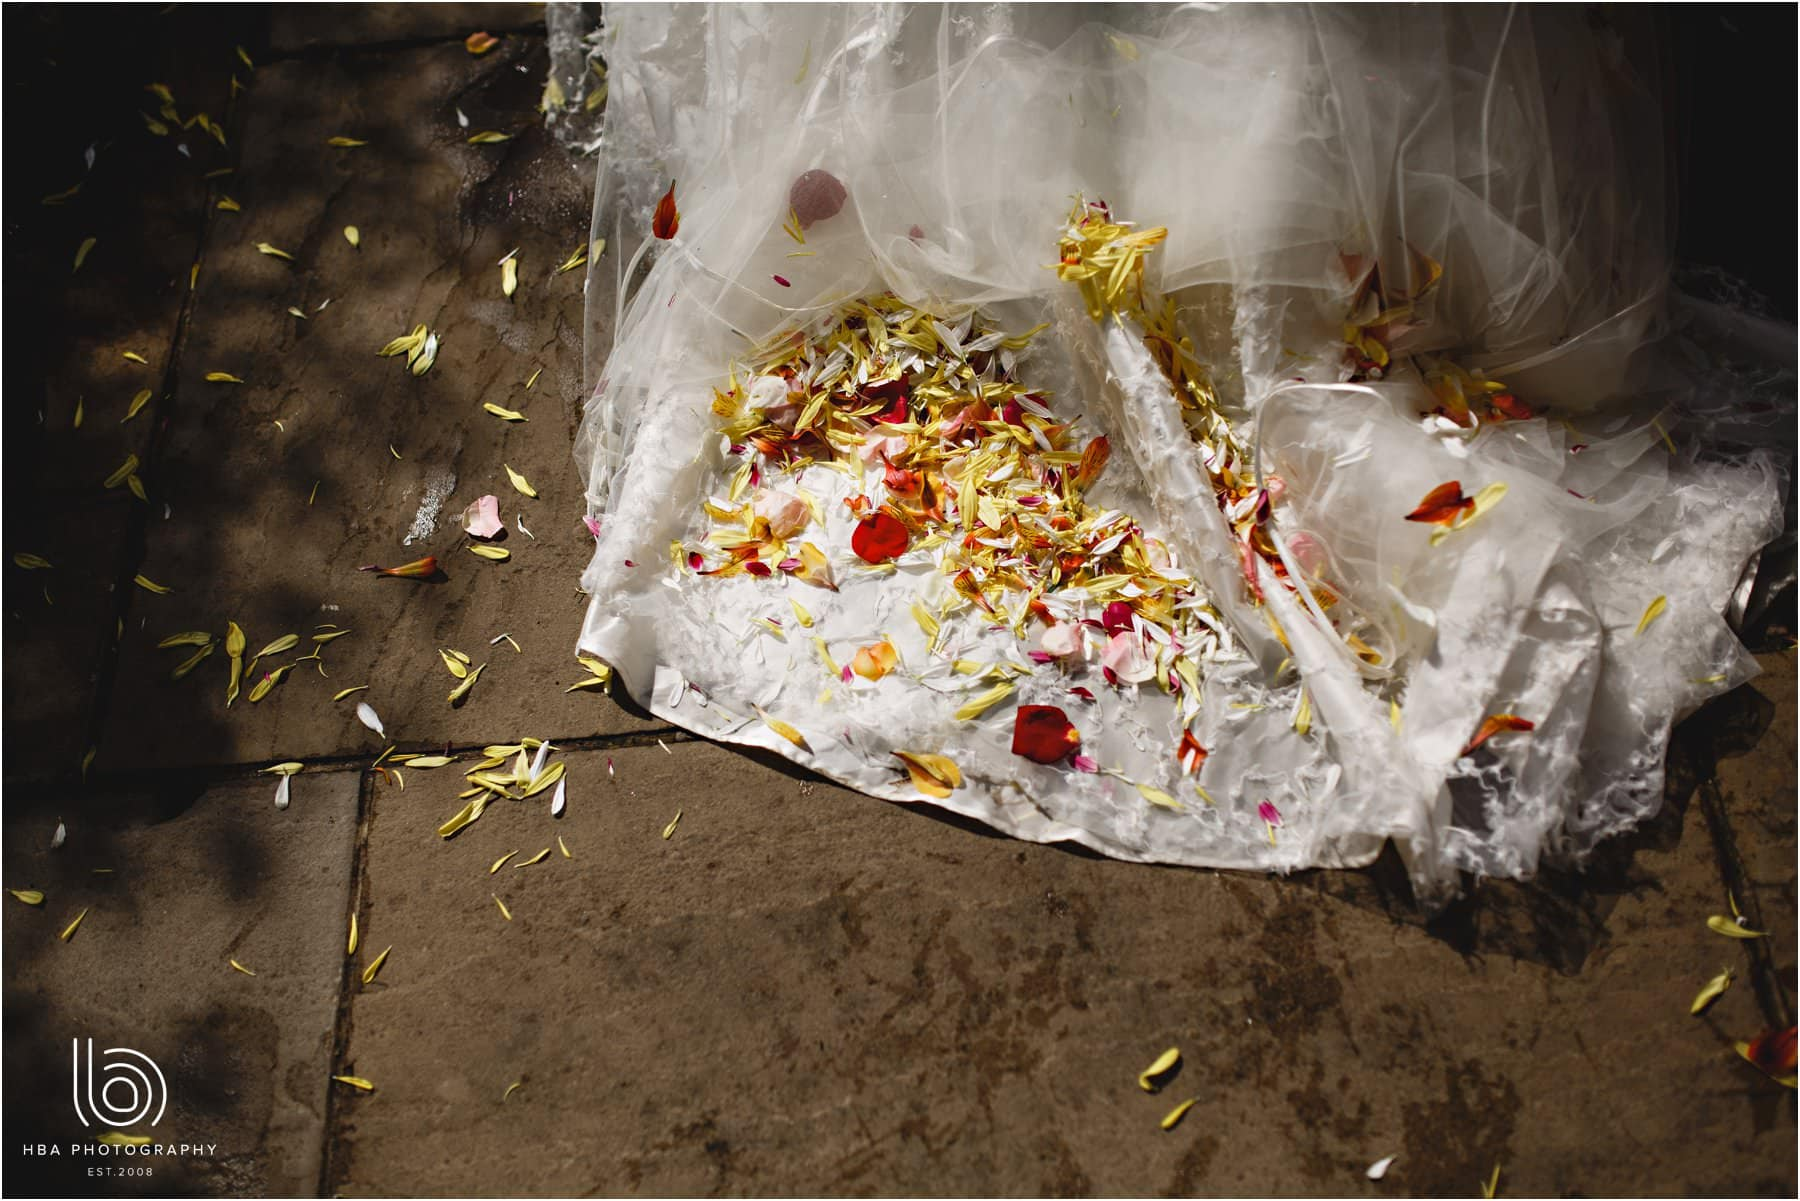 the bride's dress covered in confetti